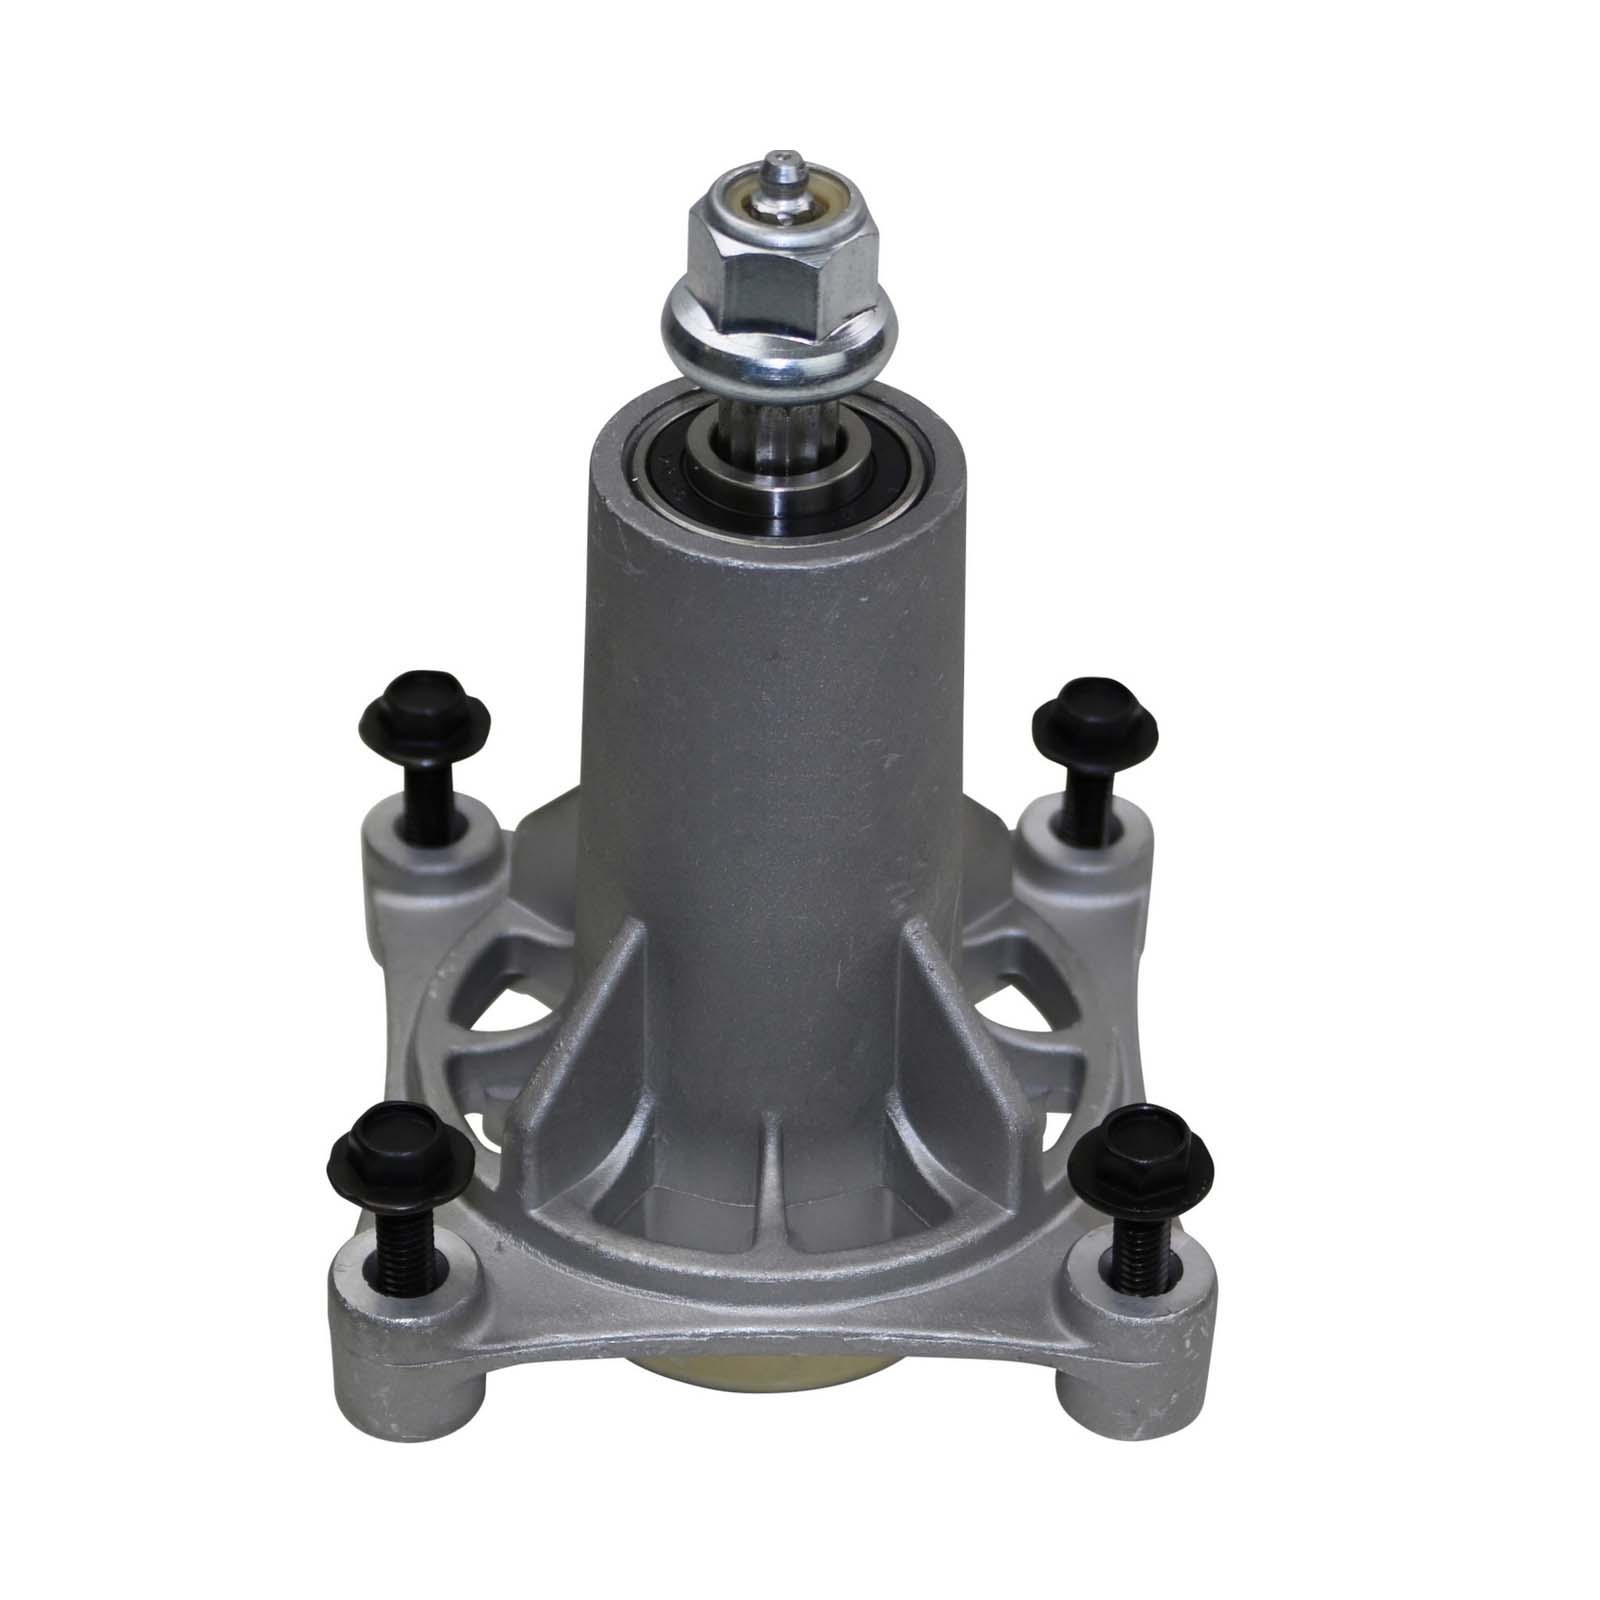 4 Bolt Spindle Assembly for Select Husqvarna & Craftsman Ride On Mowers